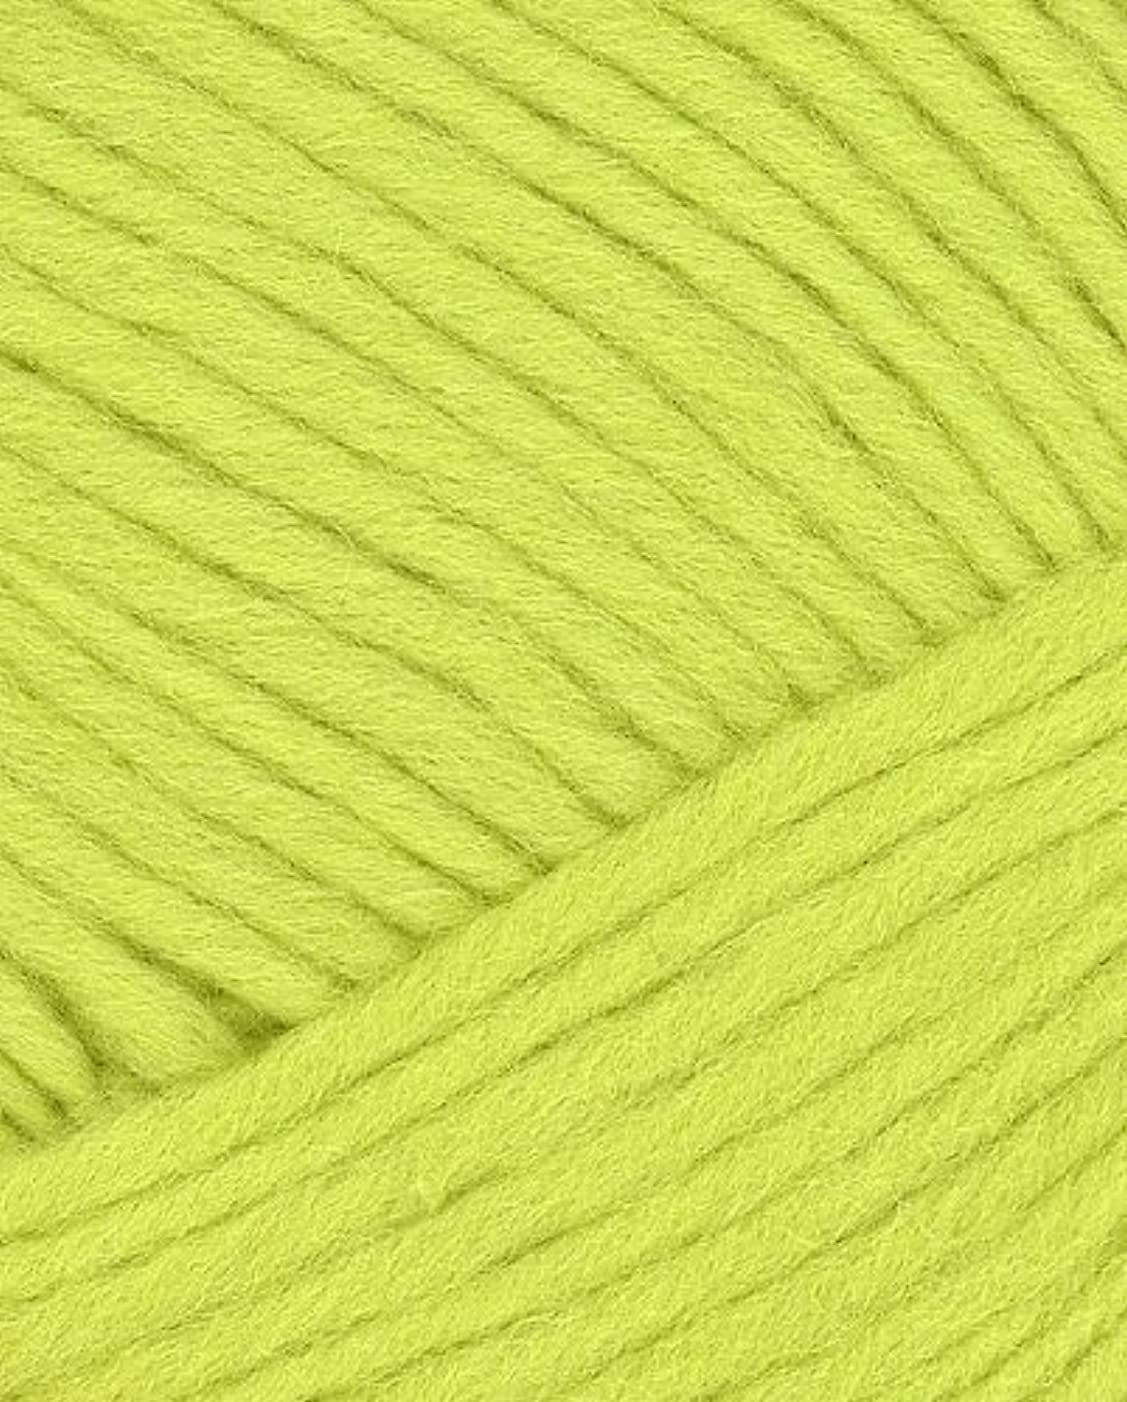 Crystal Palace Iceland Solid Yarn 1240 Limeade